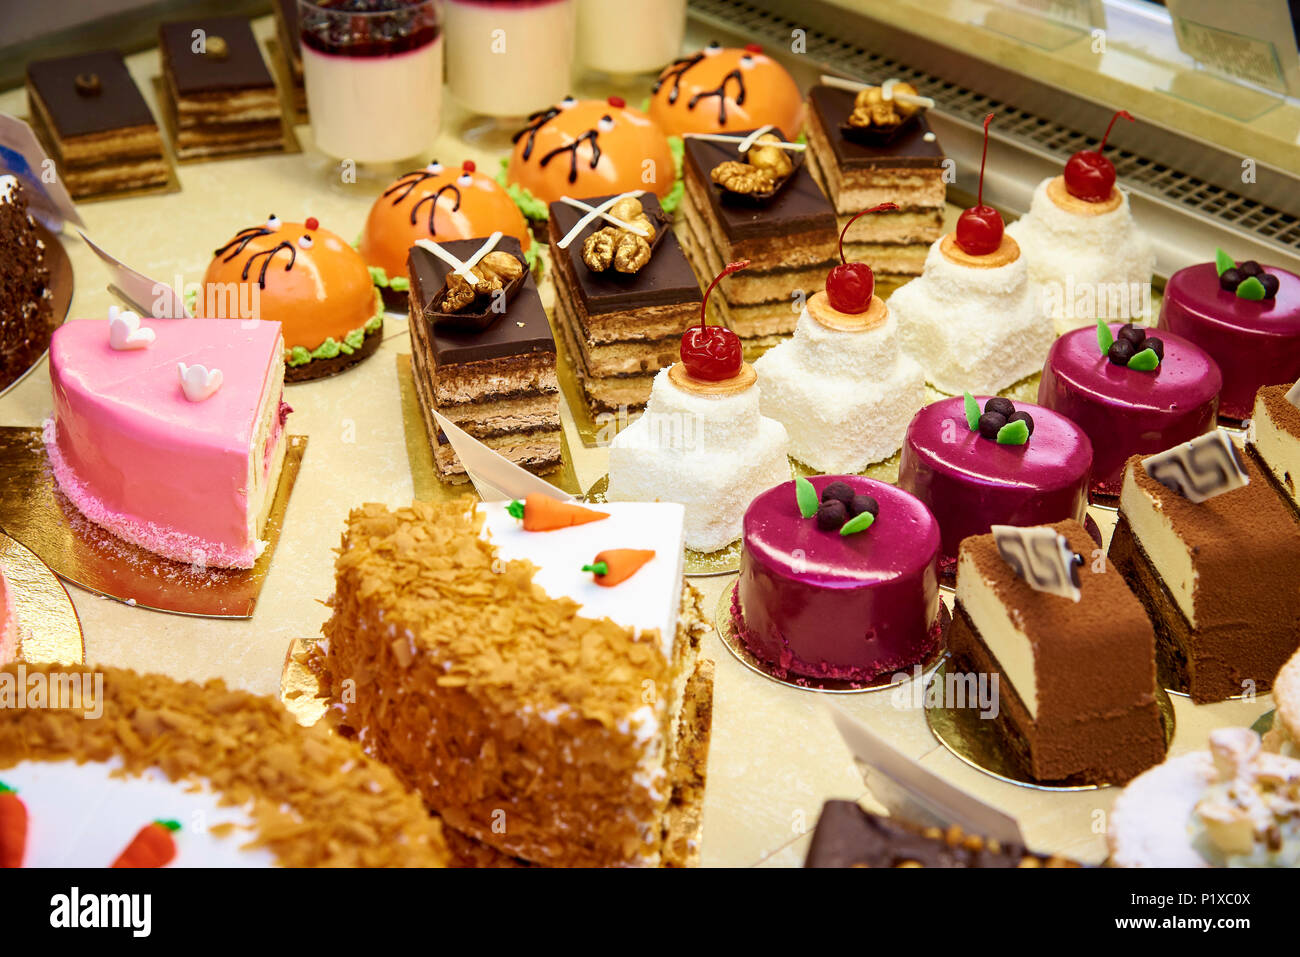 Rows of a variety of cooked desserts close-up in the display case. - Stock Image